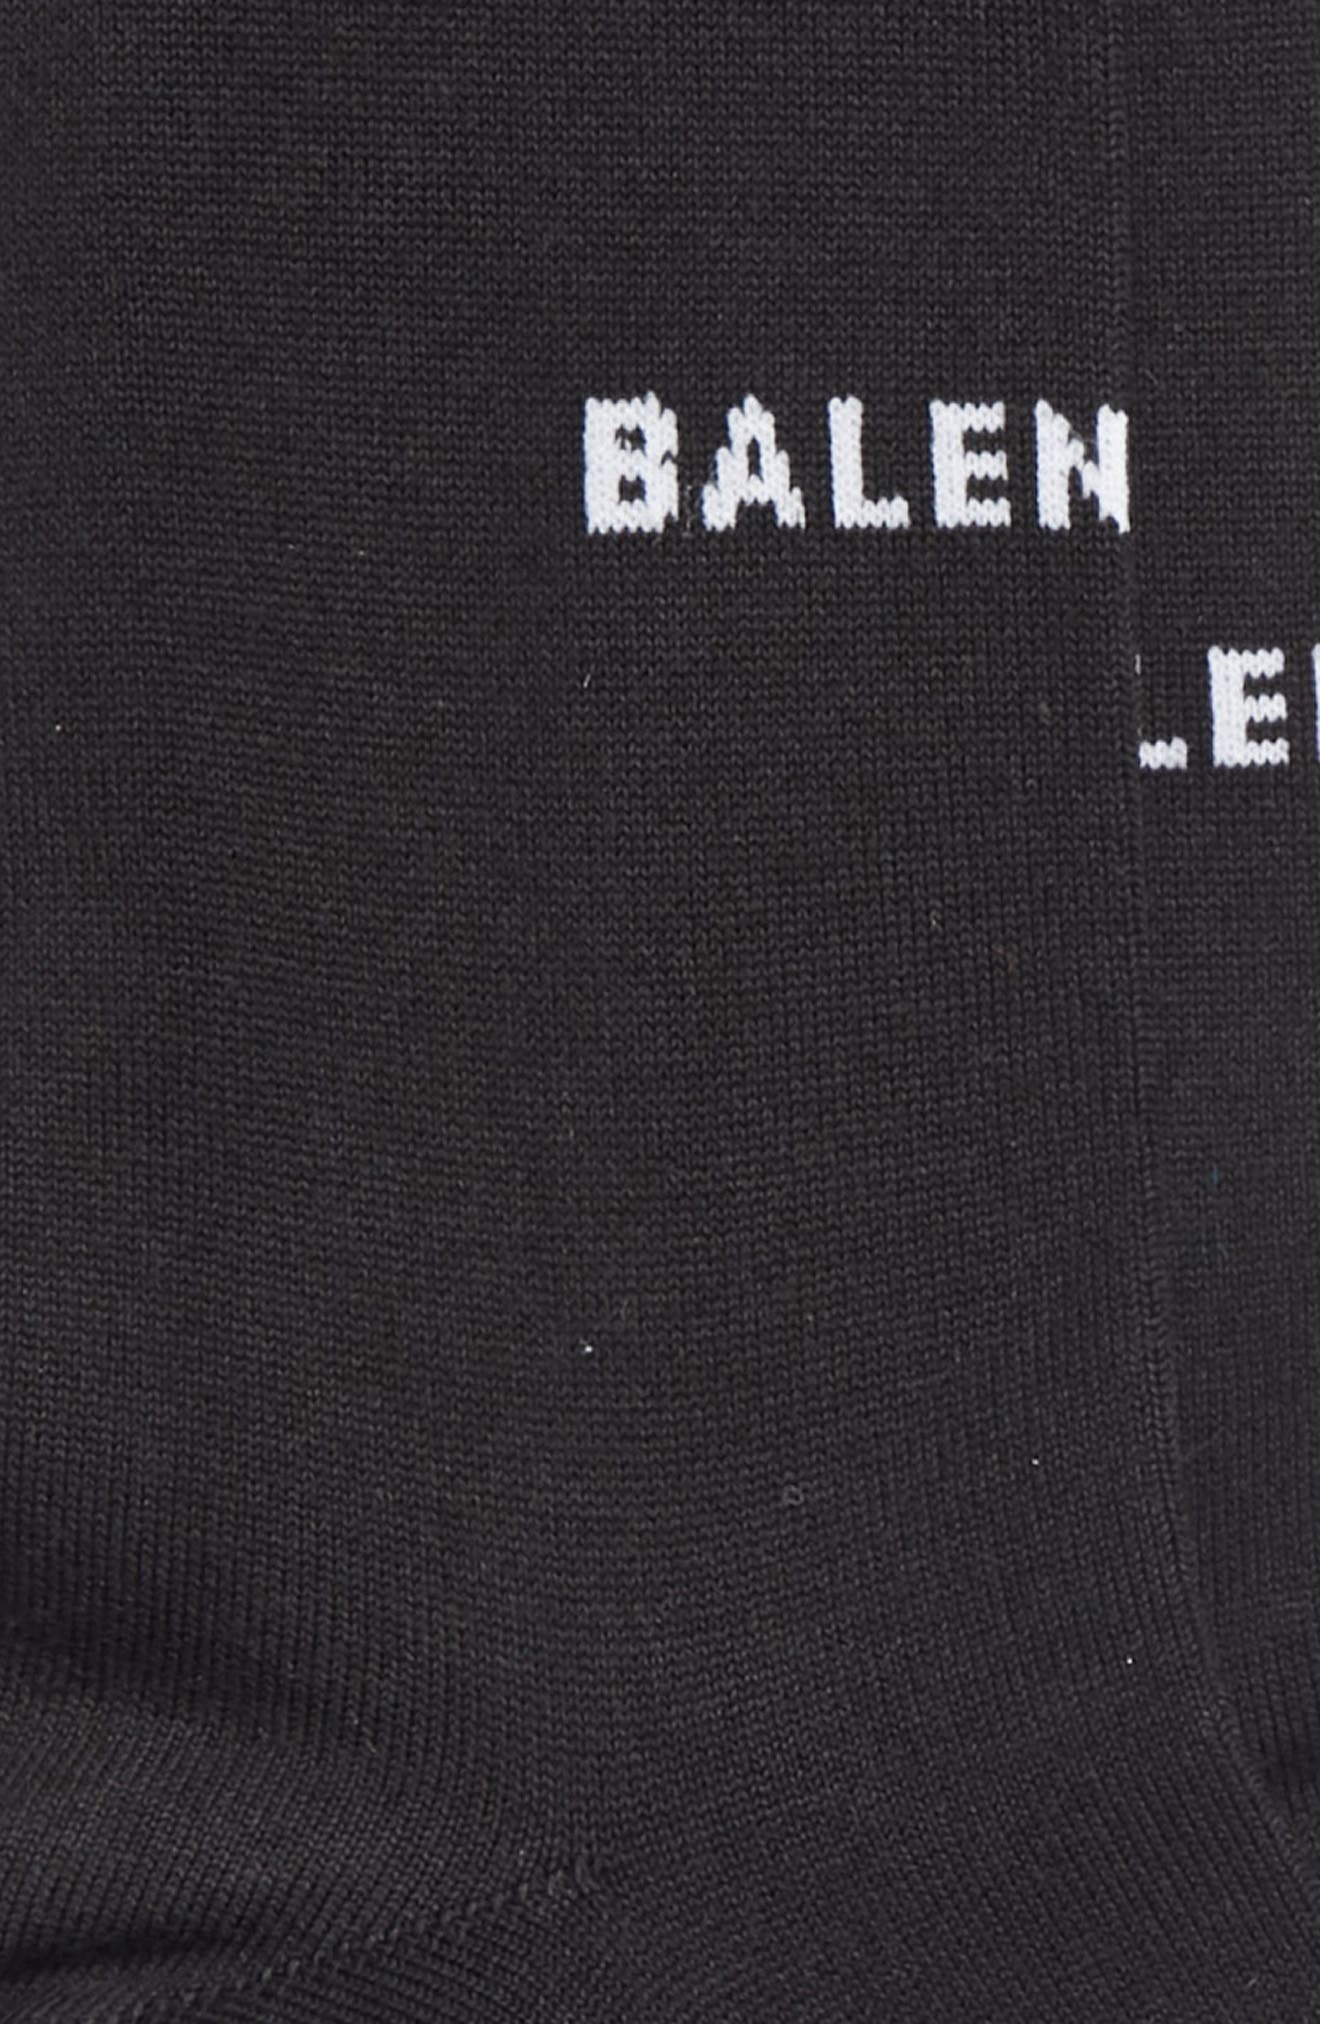 BALENCIAGA, Balenicaga Logo Crew Socks, Alternate thumbnail 2, color, BLACK/ WHITE